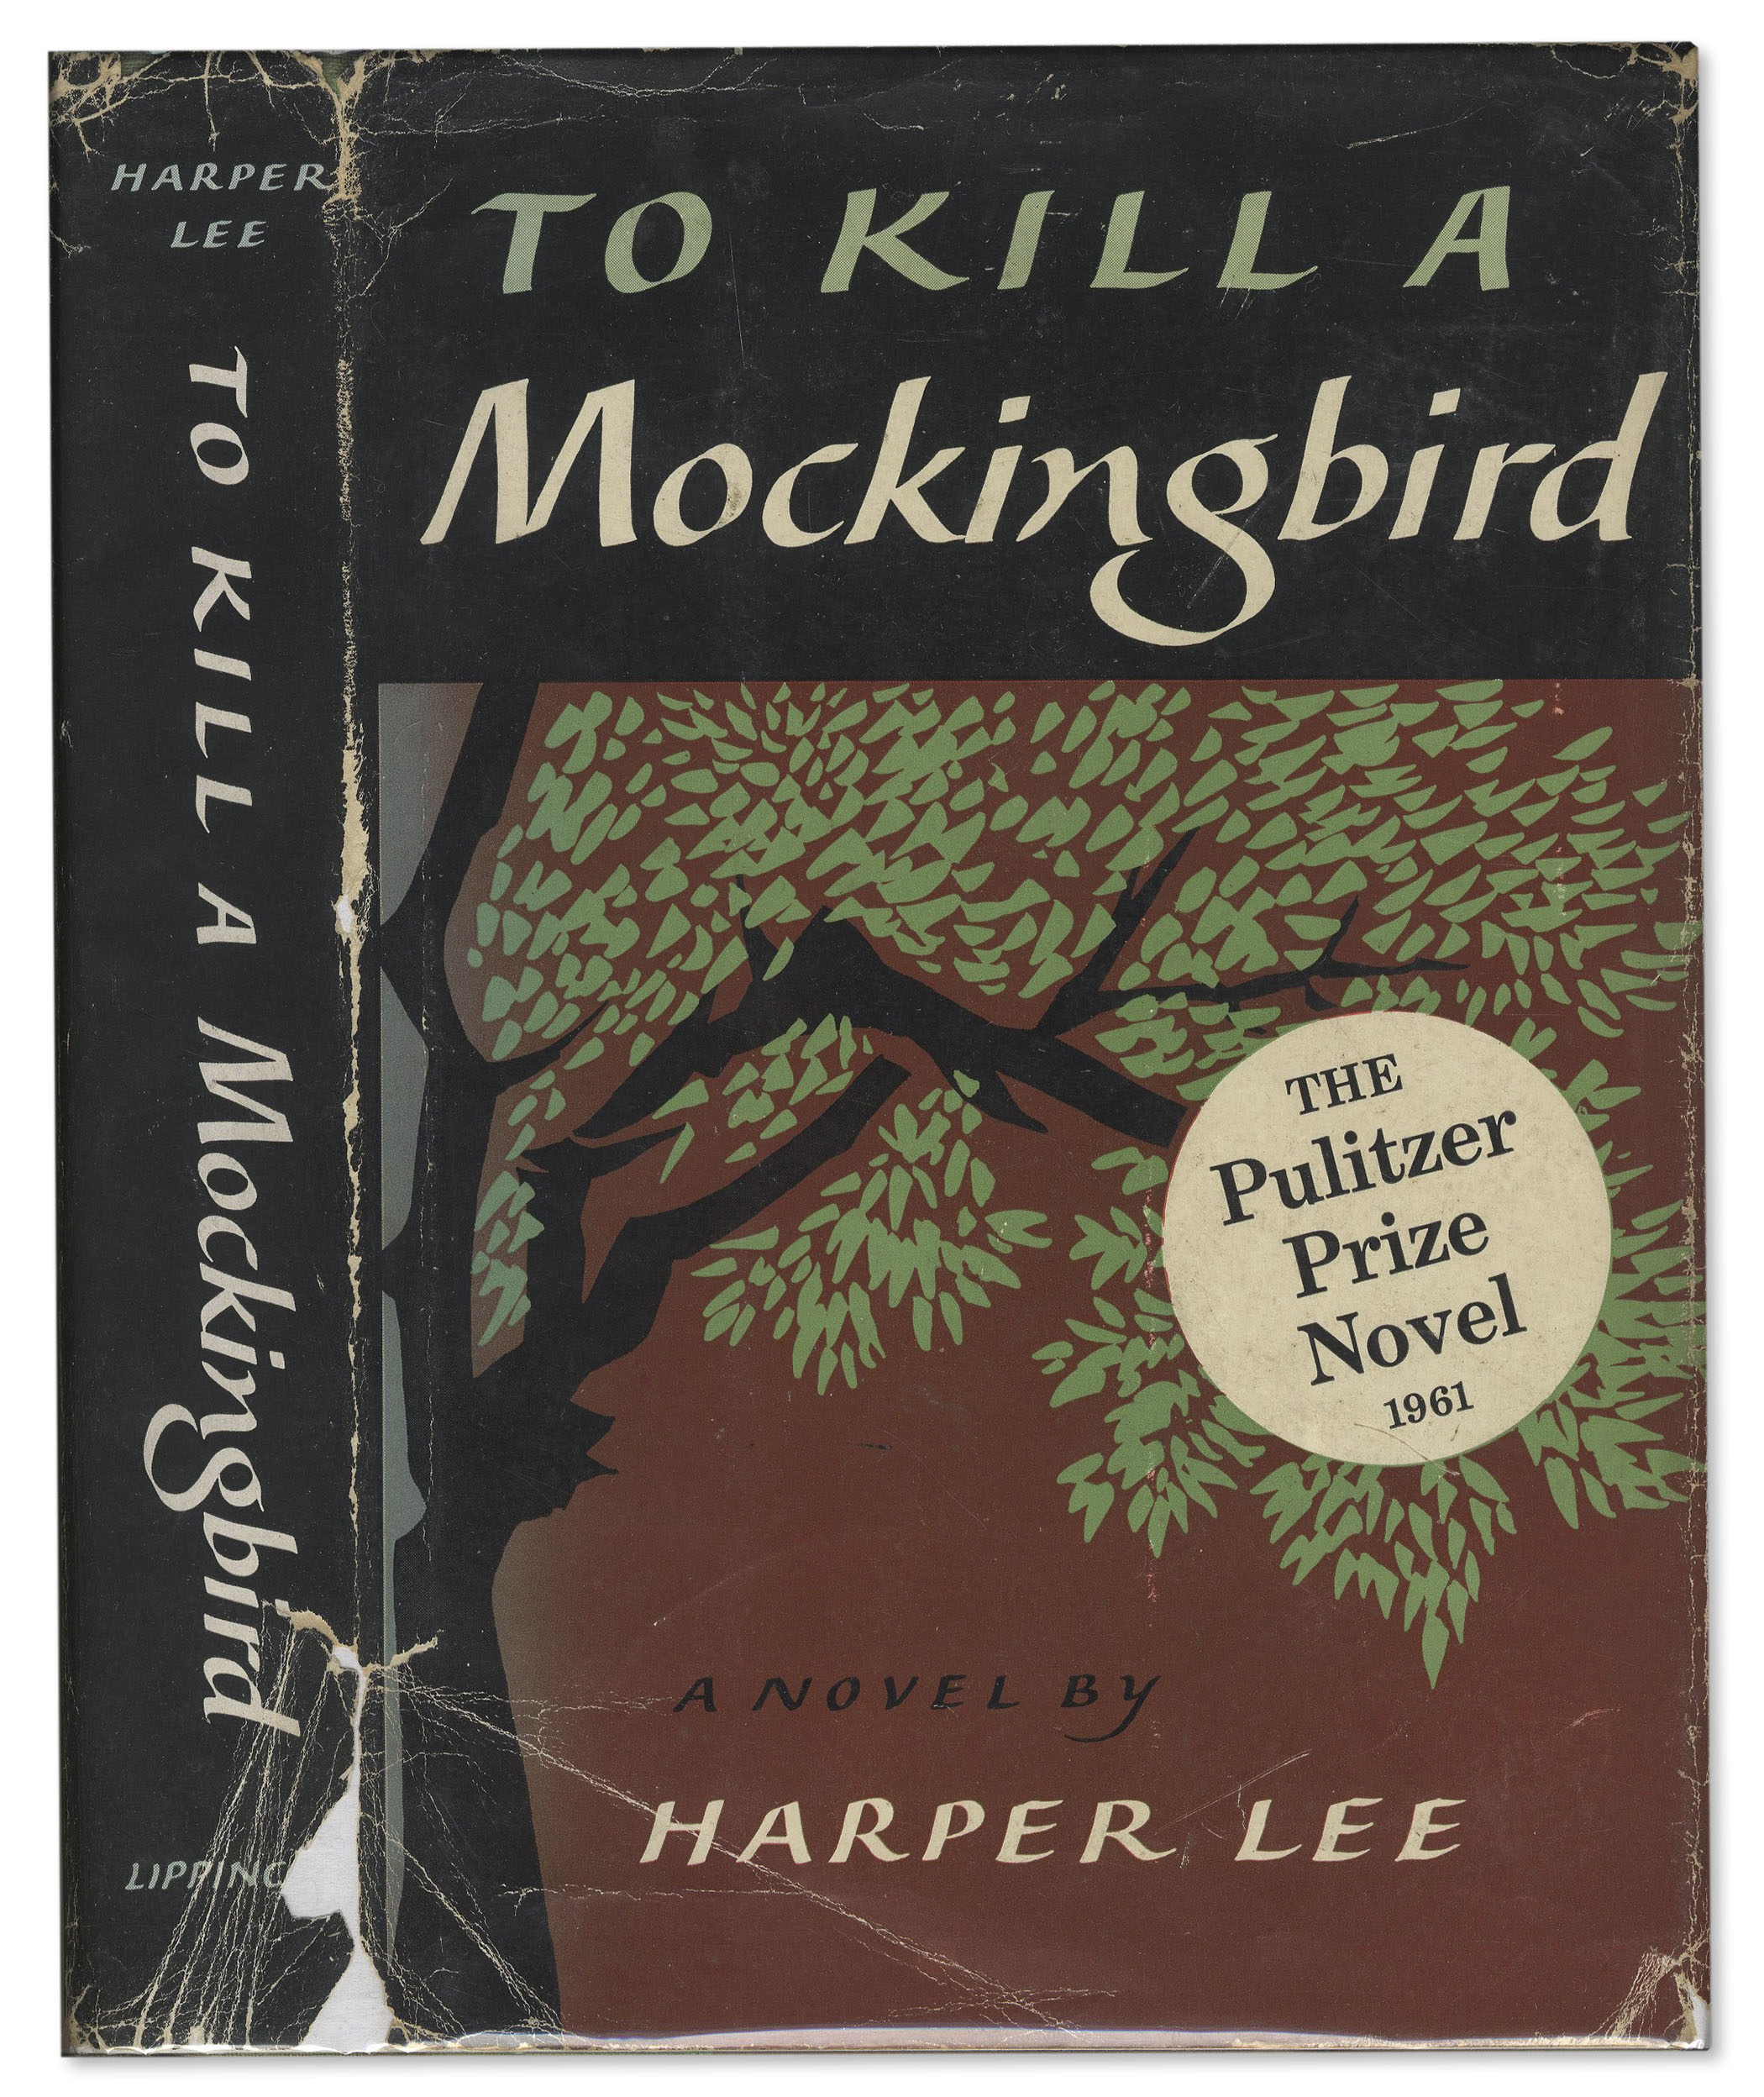 an analysis of the symbolism in the novel to kill a mockingbird by harper lee To kill a mockingbird: symbolism in the tim johnson passage  the book the interpretation of symbolism is an important skill, one which tends  the first reaction, then, to the question about harper lee's symbolism.